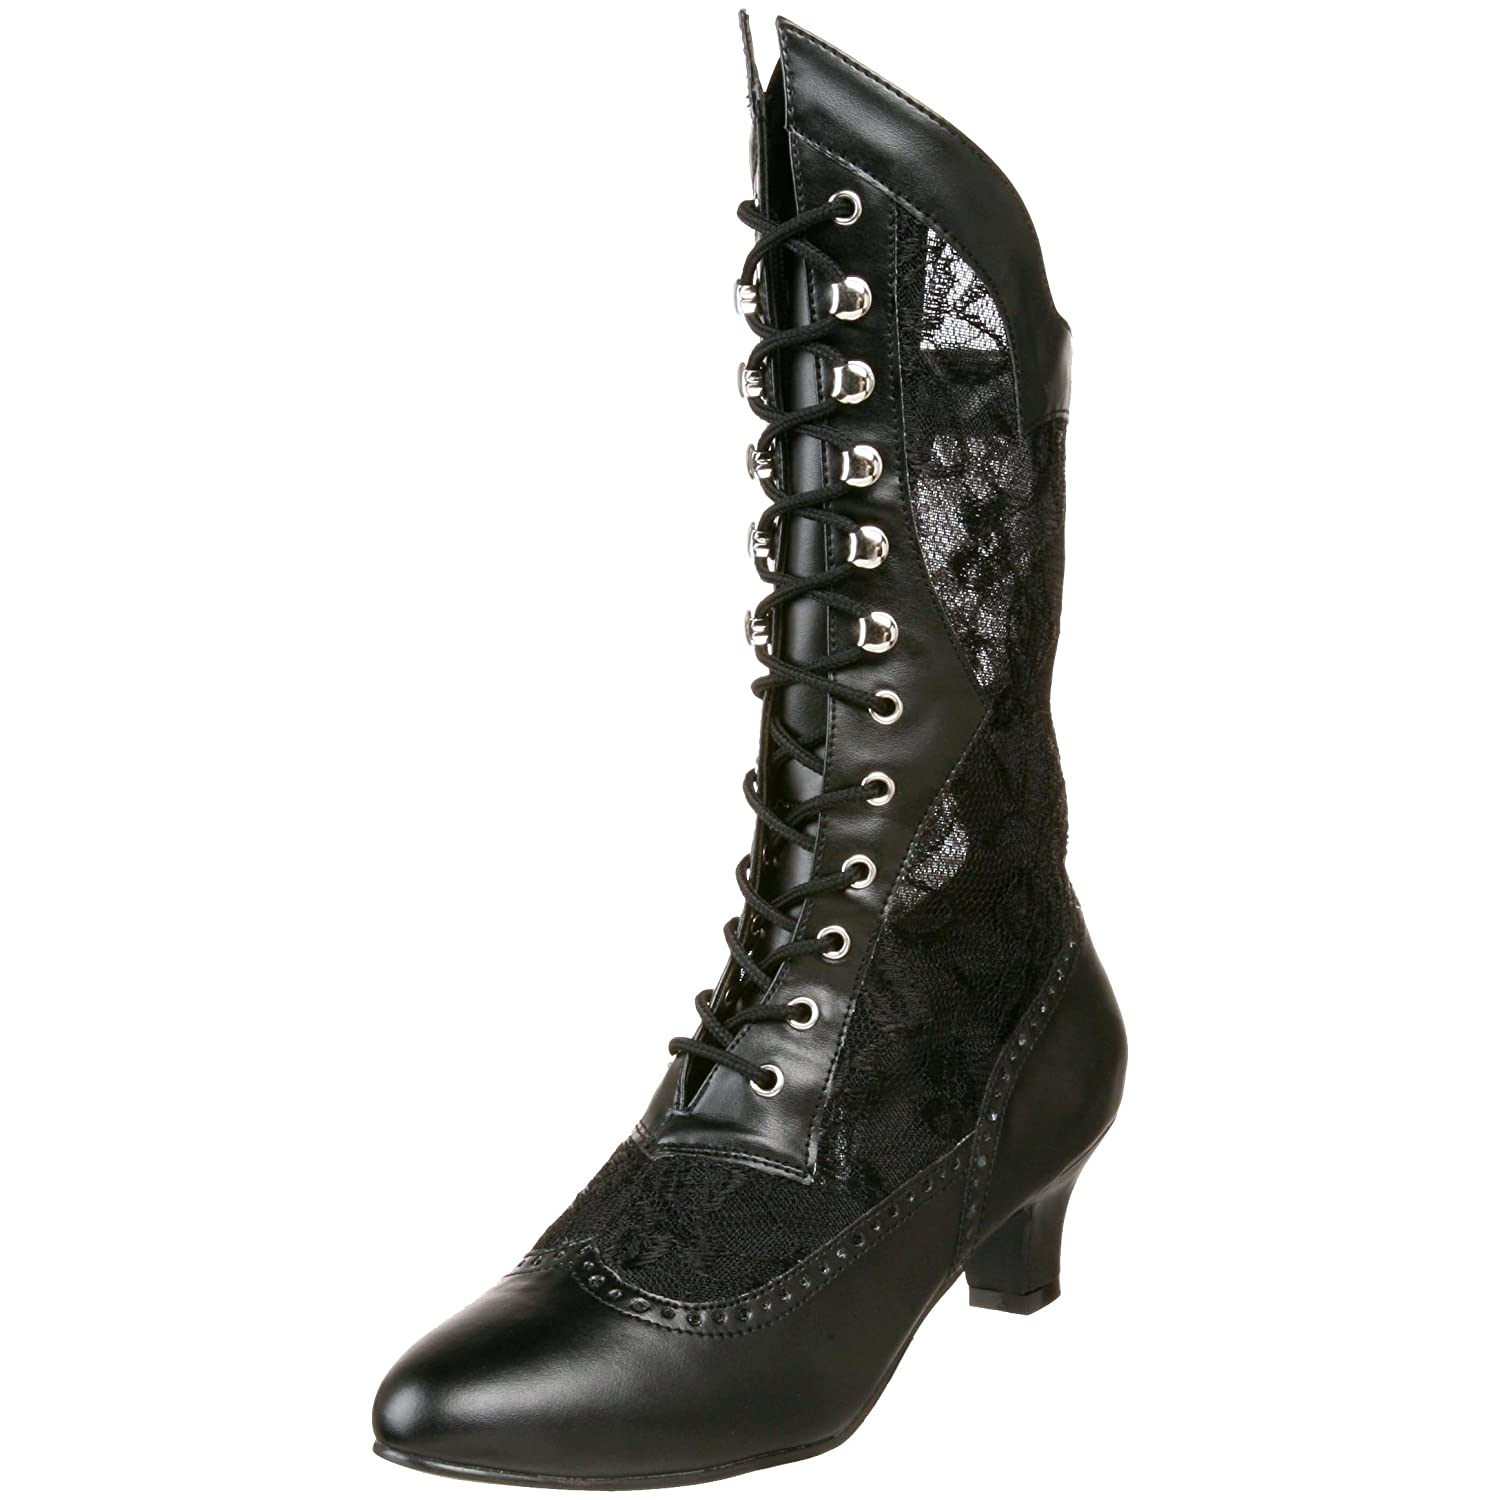 Vintage Boots- Buy Winter Retro Boots Funtasma Dame115/B/Pu Women Warm Lining Ankle Boots £74.05 AT vintagedancer.com